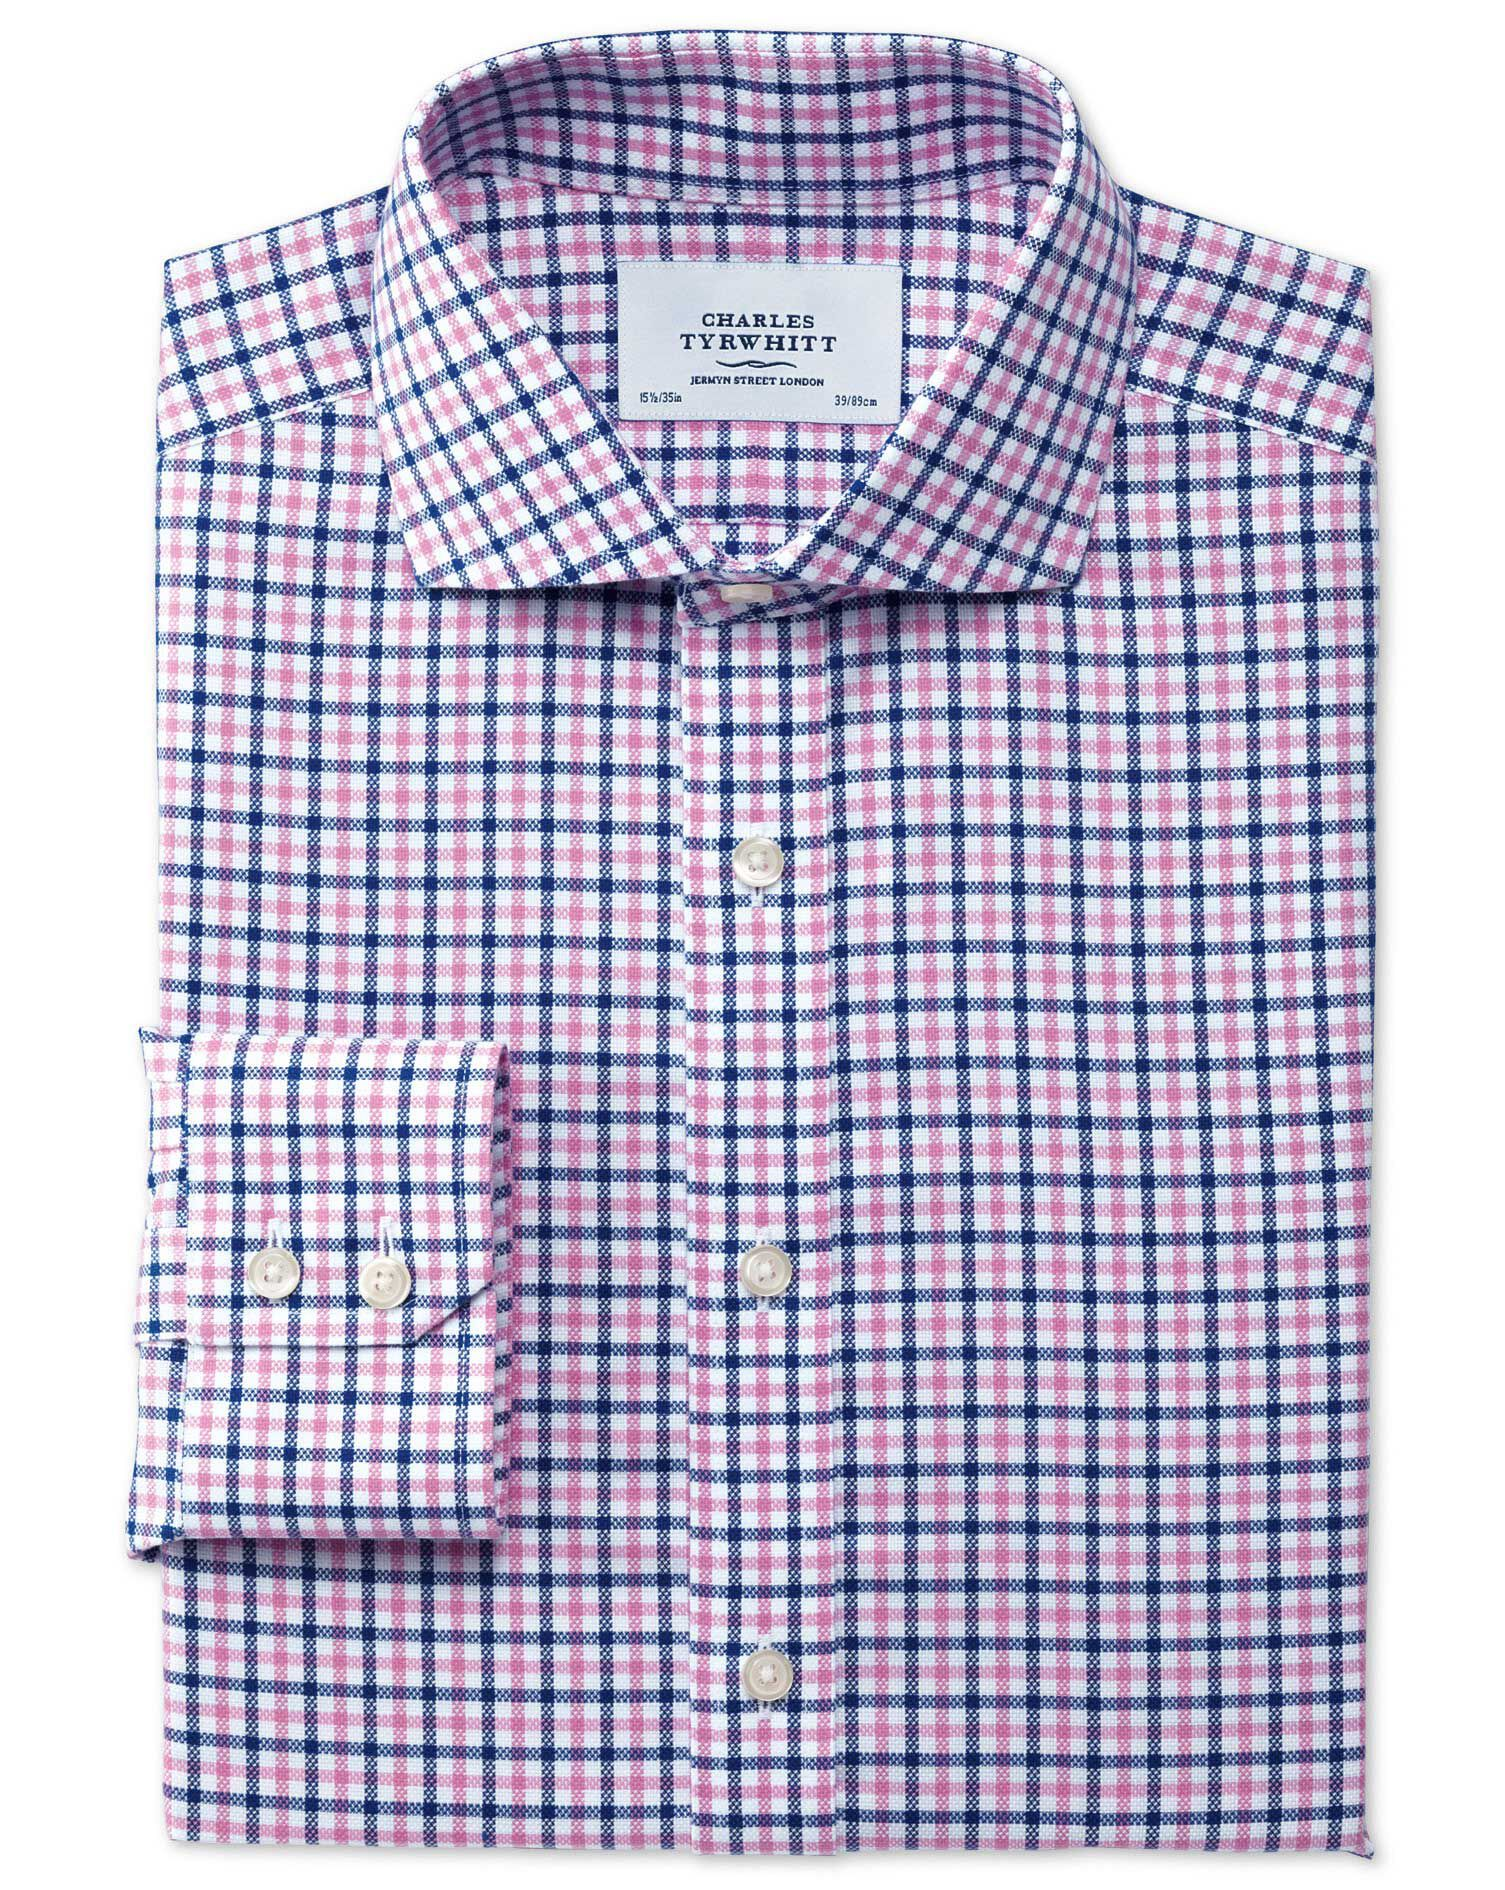 Slim Fit Cutaway Collar Non-Iron Royal Oxford Check Blue and Pink Cotton Formal Shirt Single Cuff Si